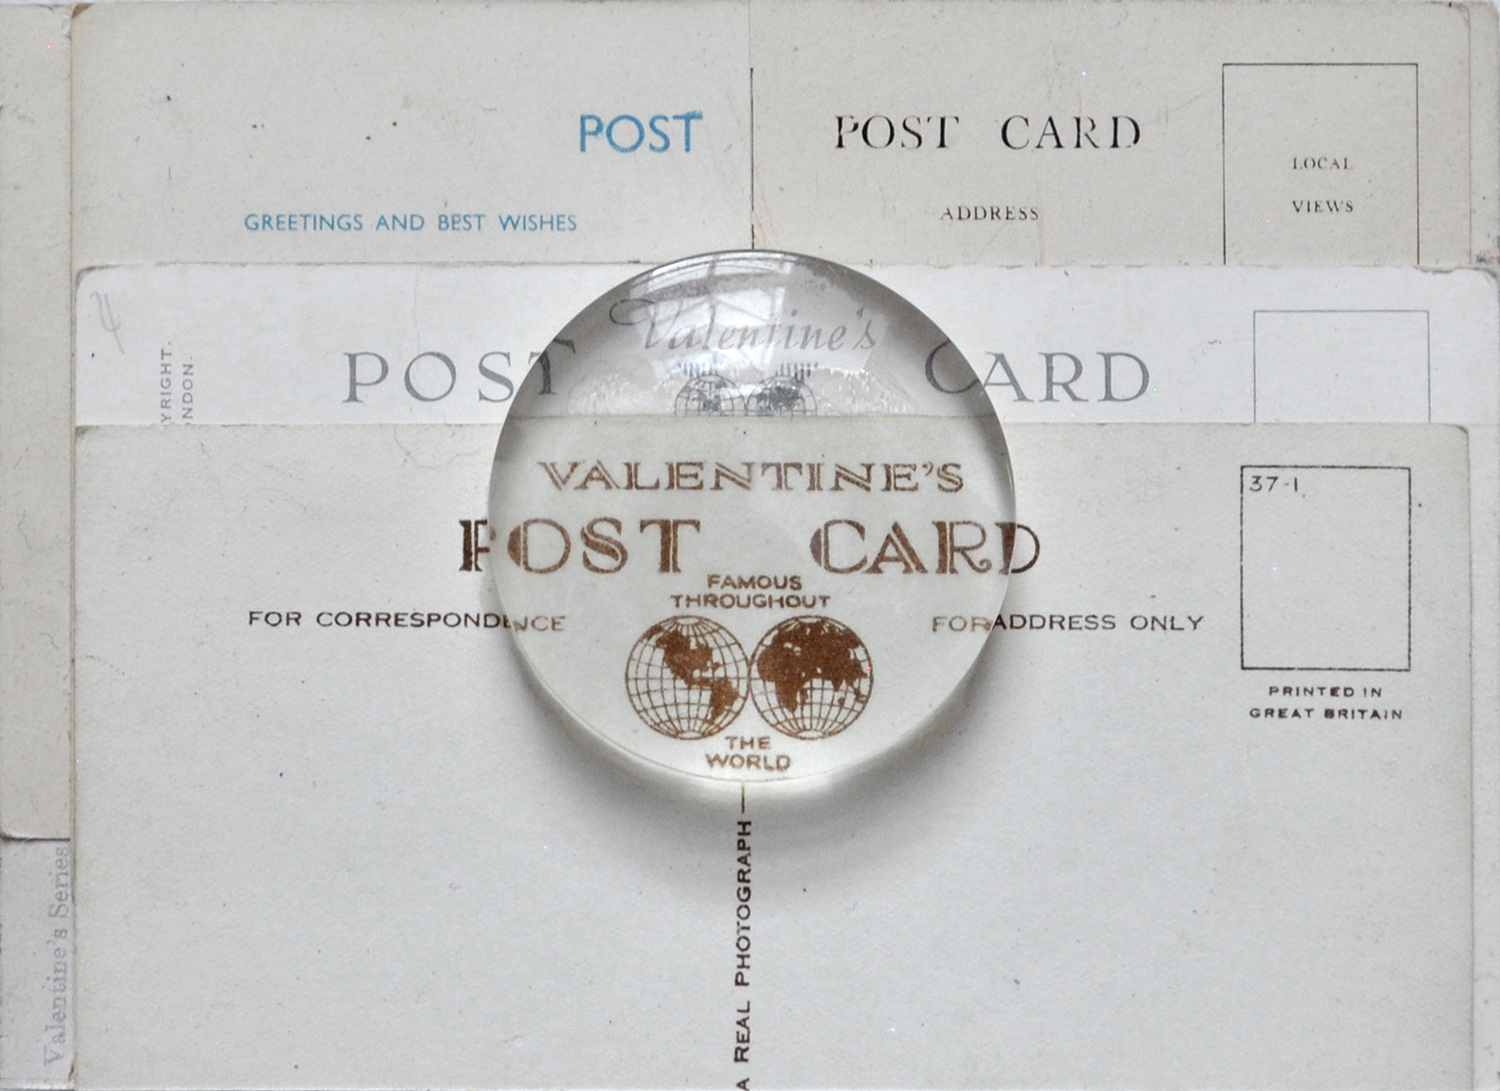 Valentine's Post Card, 1851-1994 , postcard, 2016 collage, found postcard, acrylic lens, cardboard 10,5 x 14,8 cm   private collection